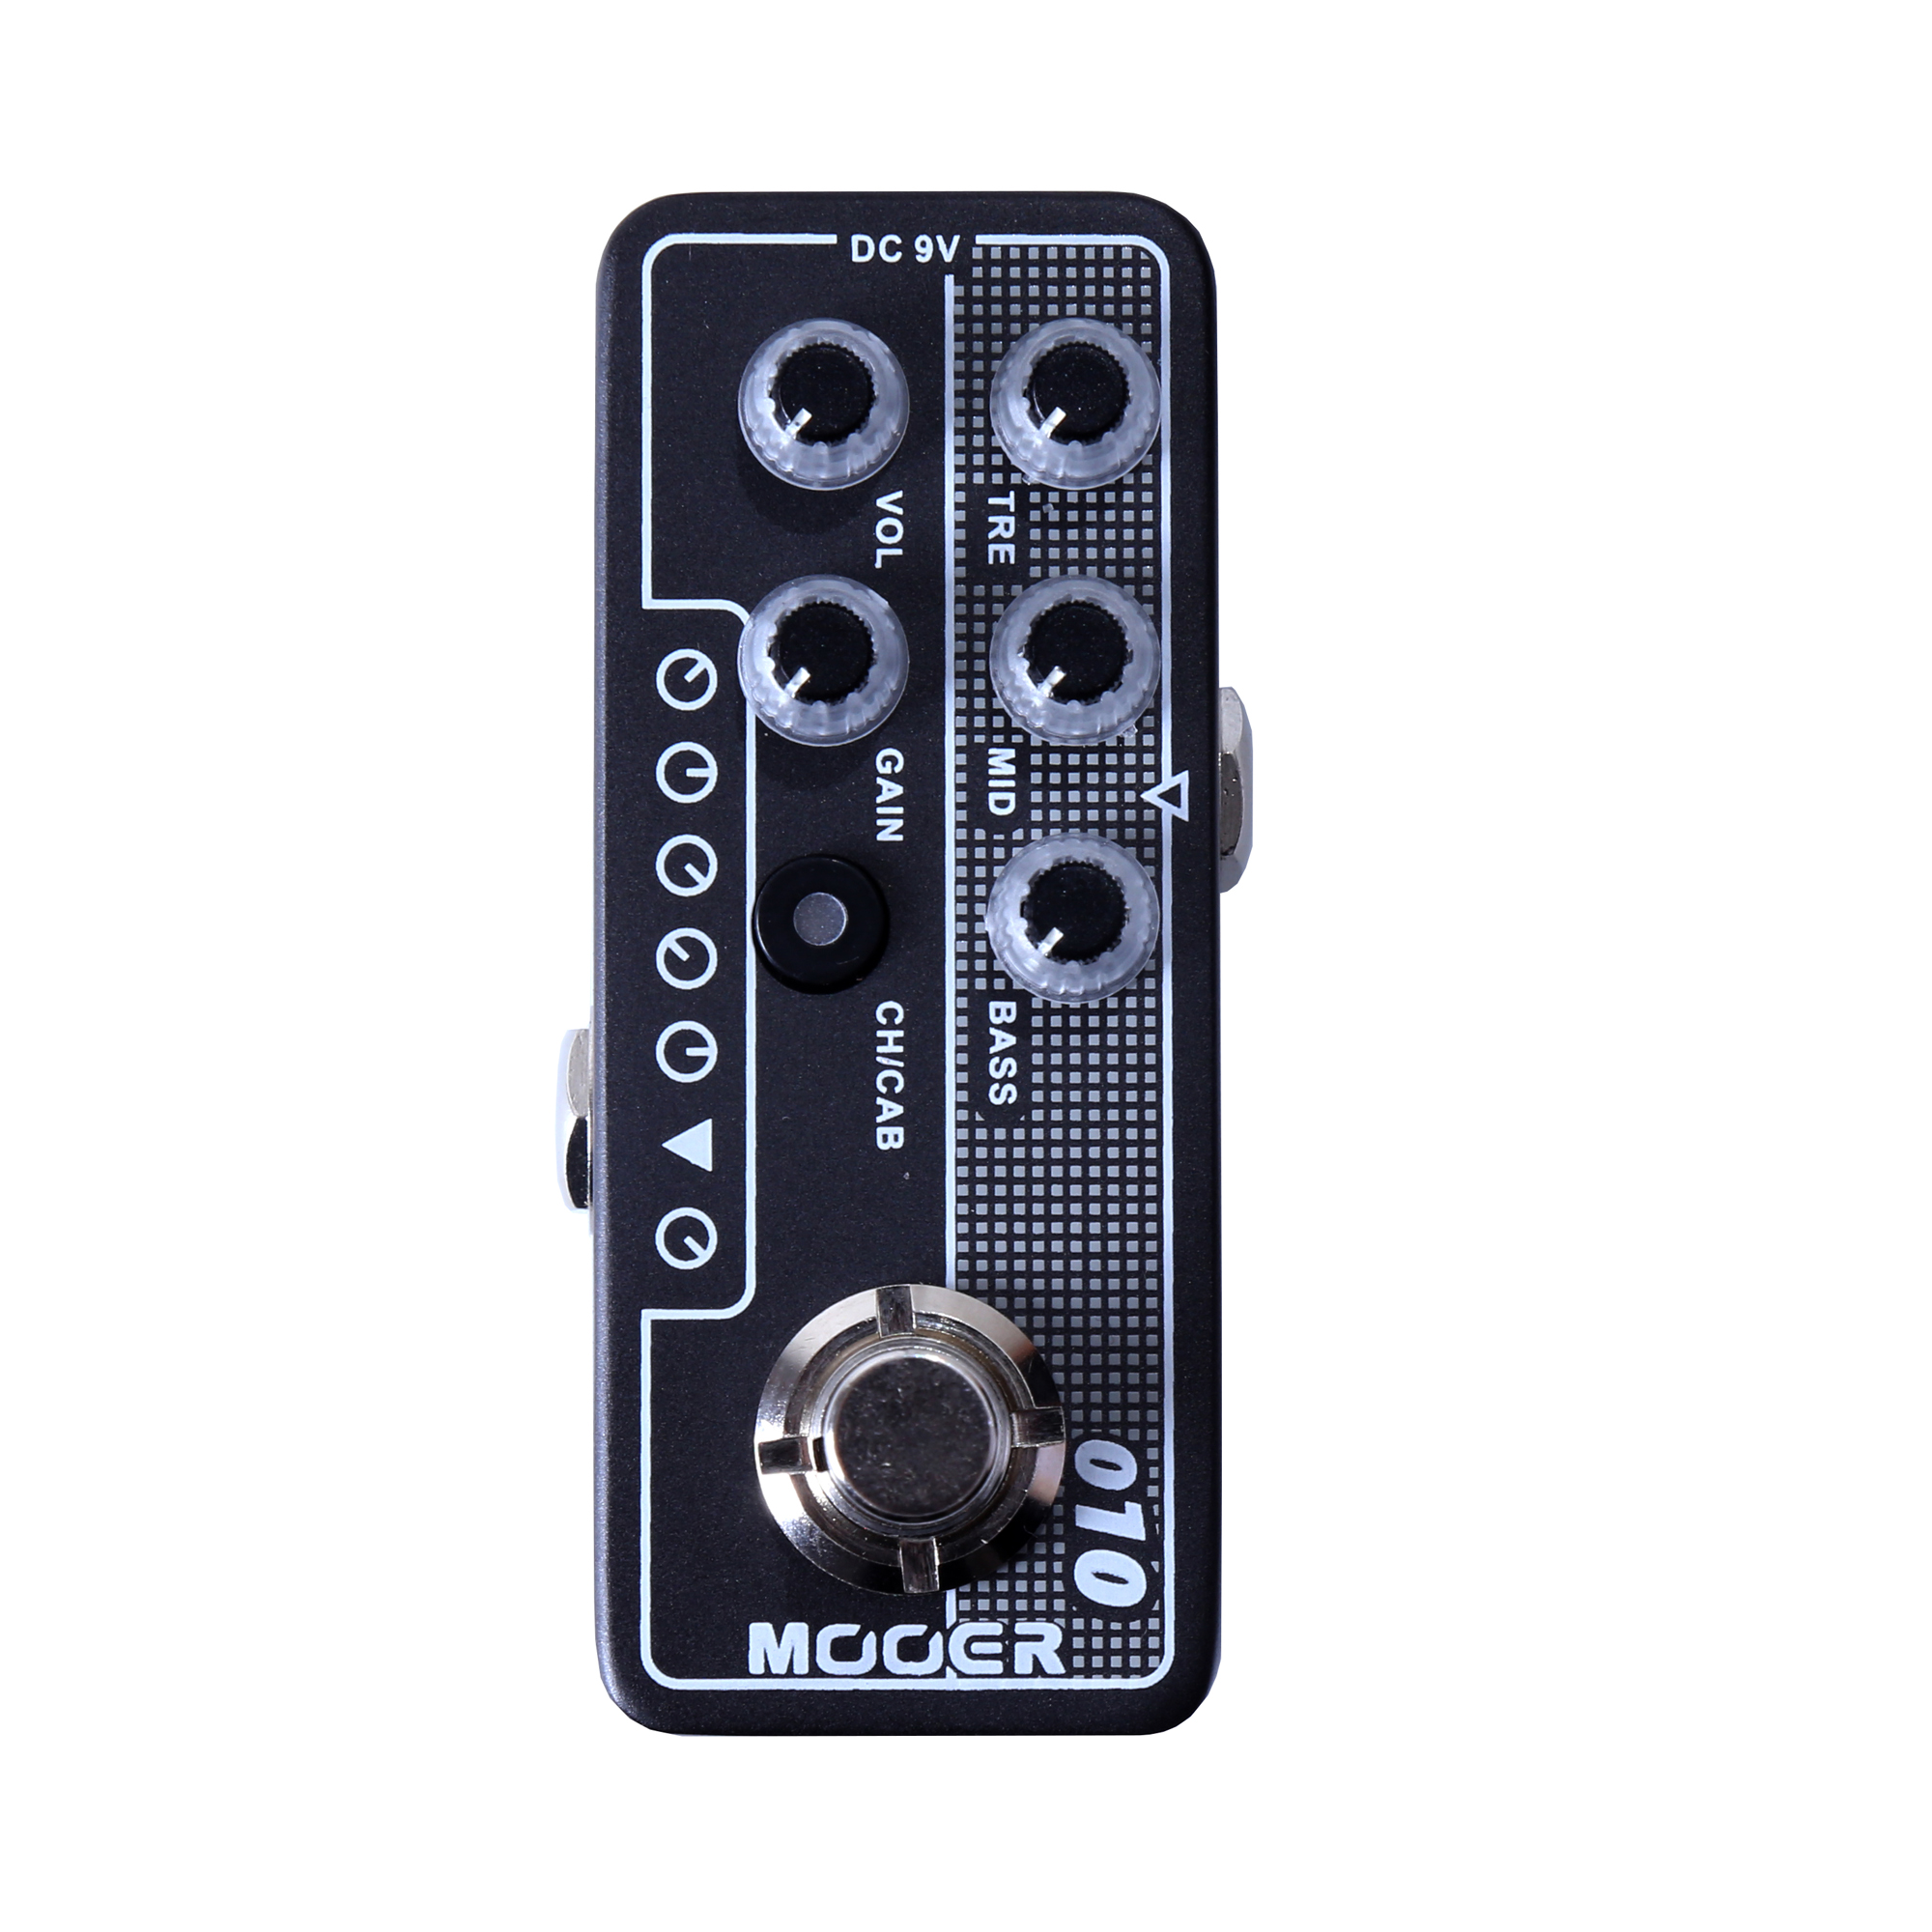 mooer 010 two stone guitar effect pedal gain volume controls tube amplifier 3 band eq electric. Black Bedroom Furniture Sets. Home Design Ideas